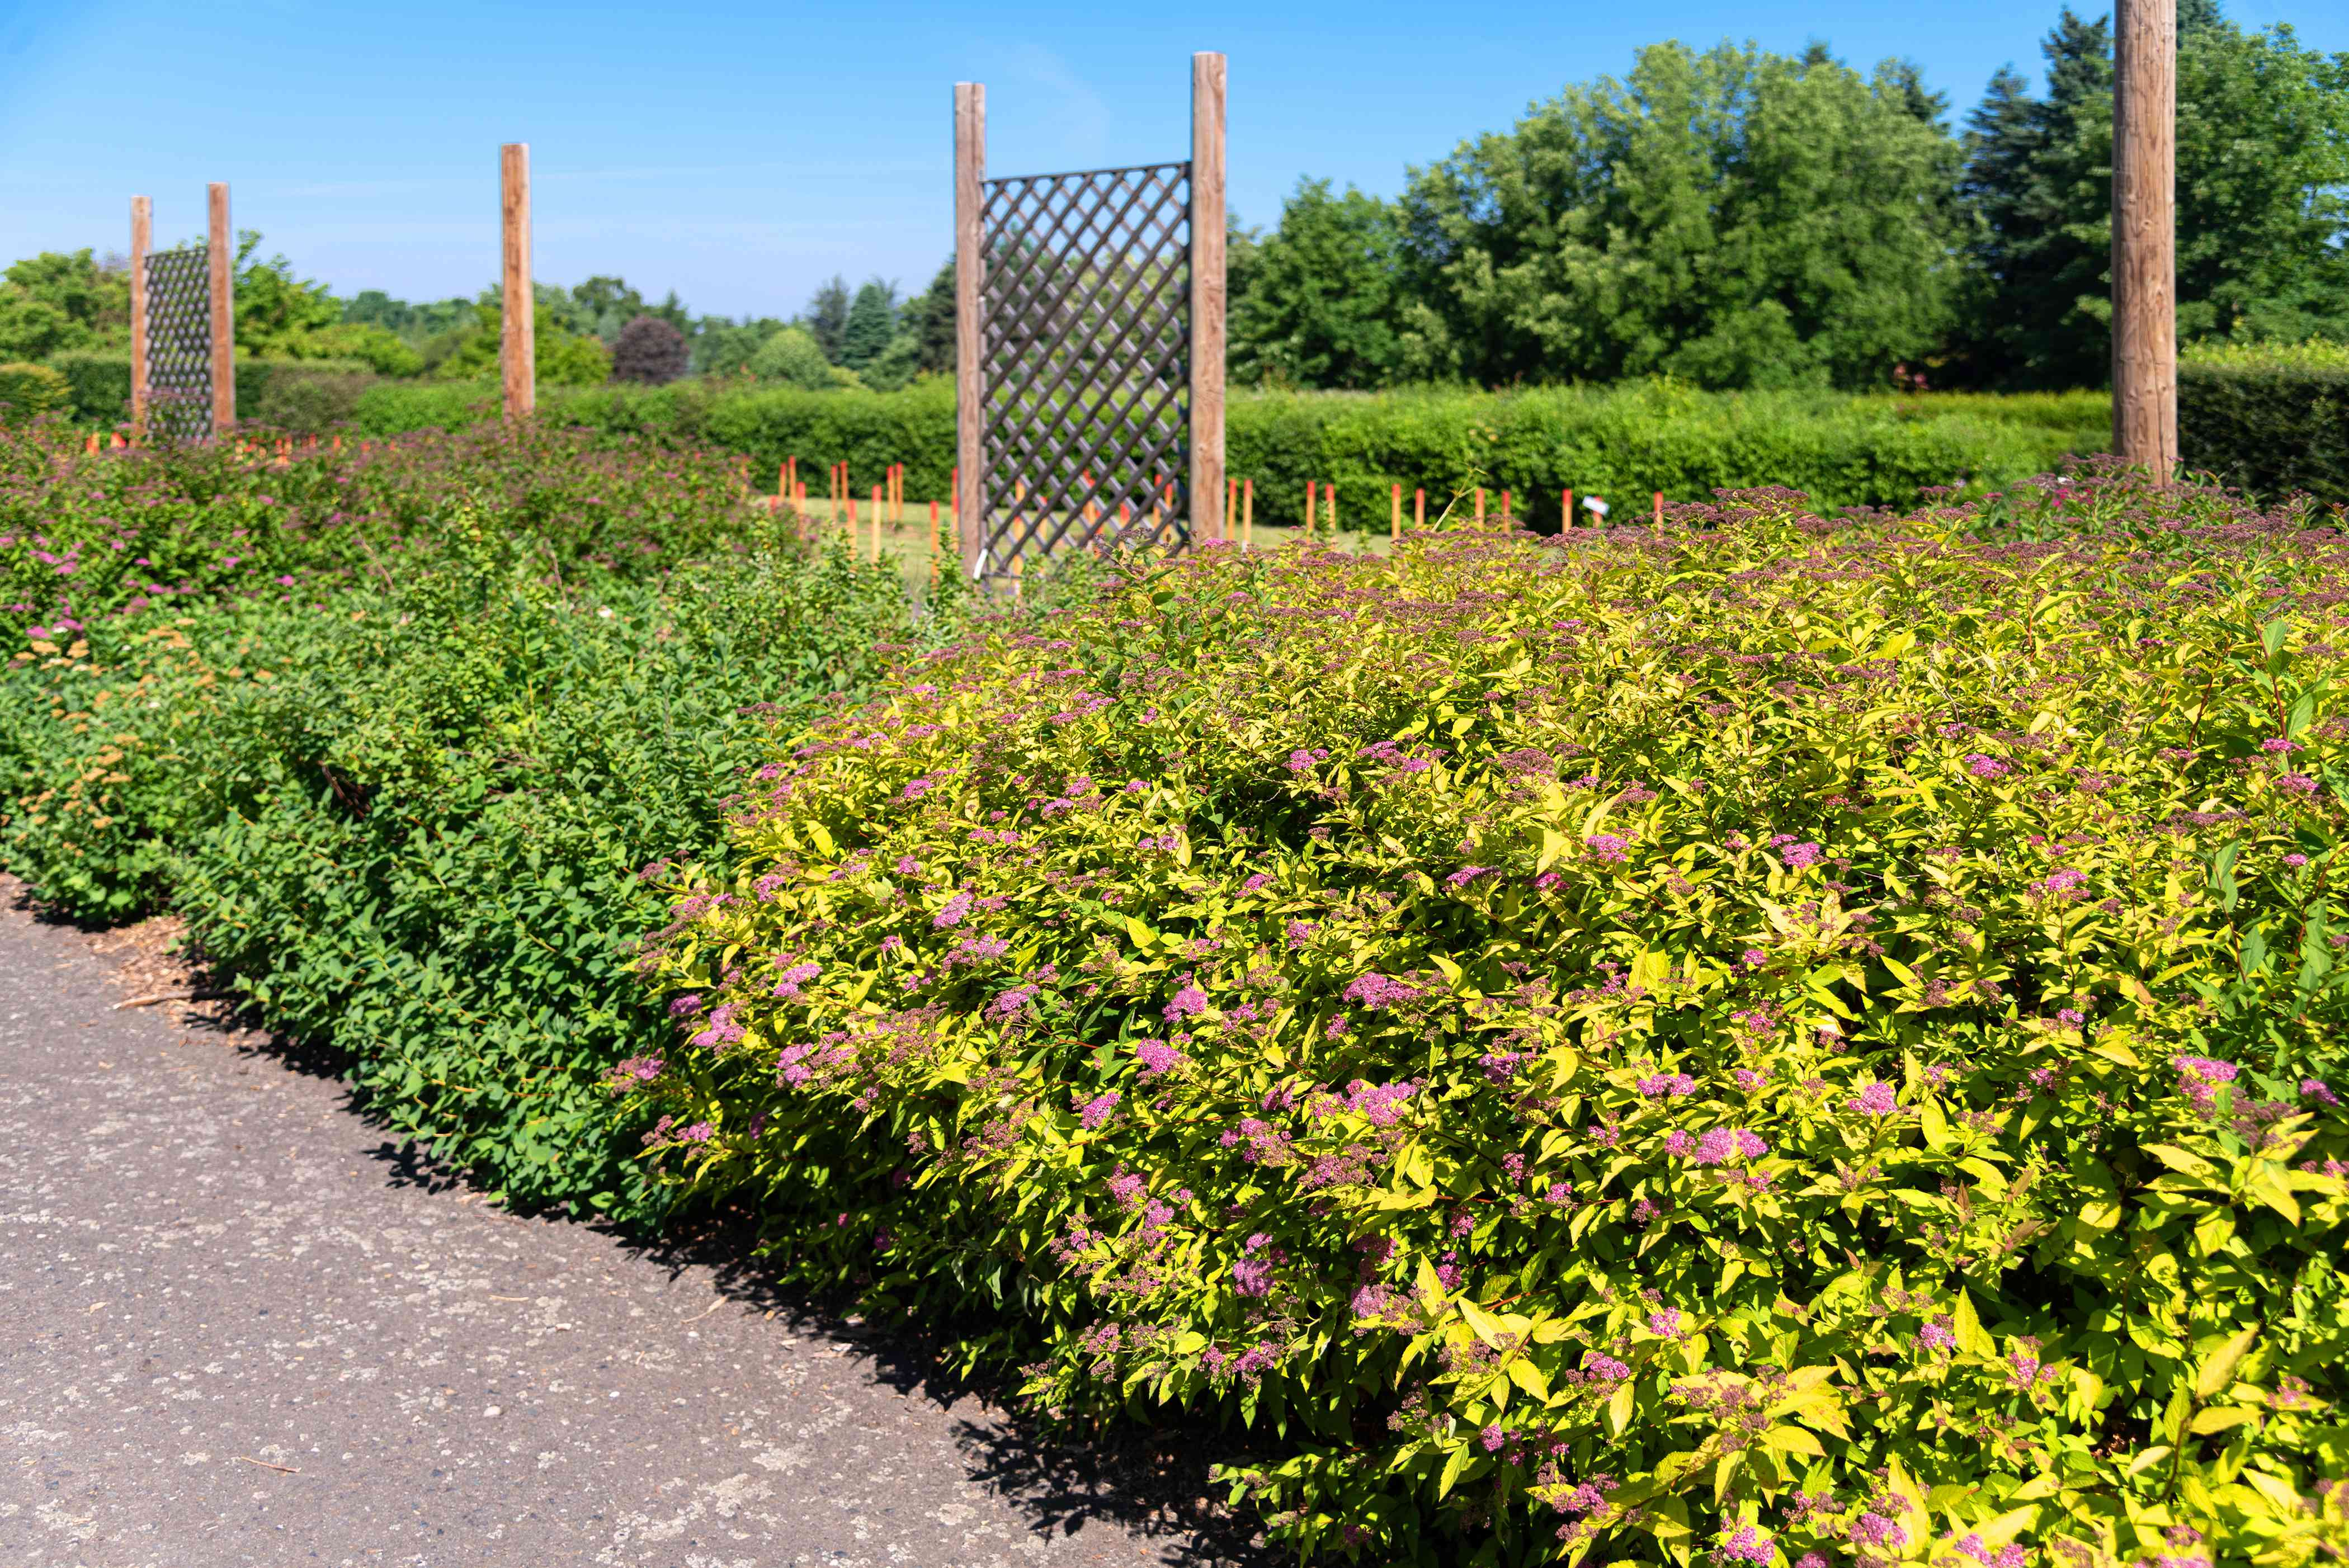 Gold mound spirea shrub with small pink flowers and golden leaves in garden with trellises